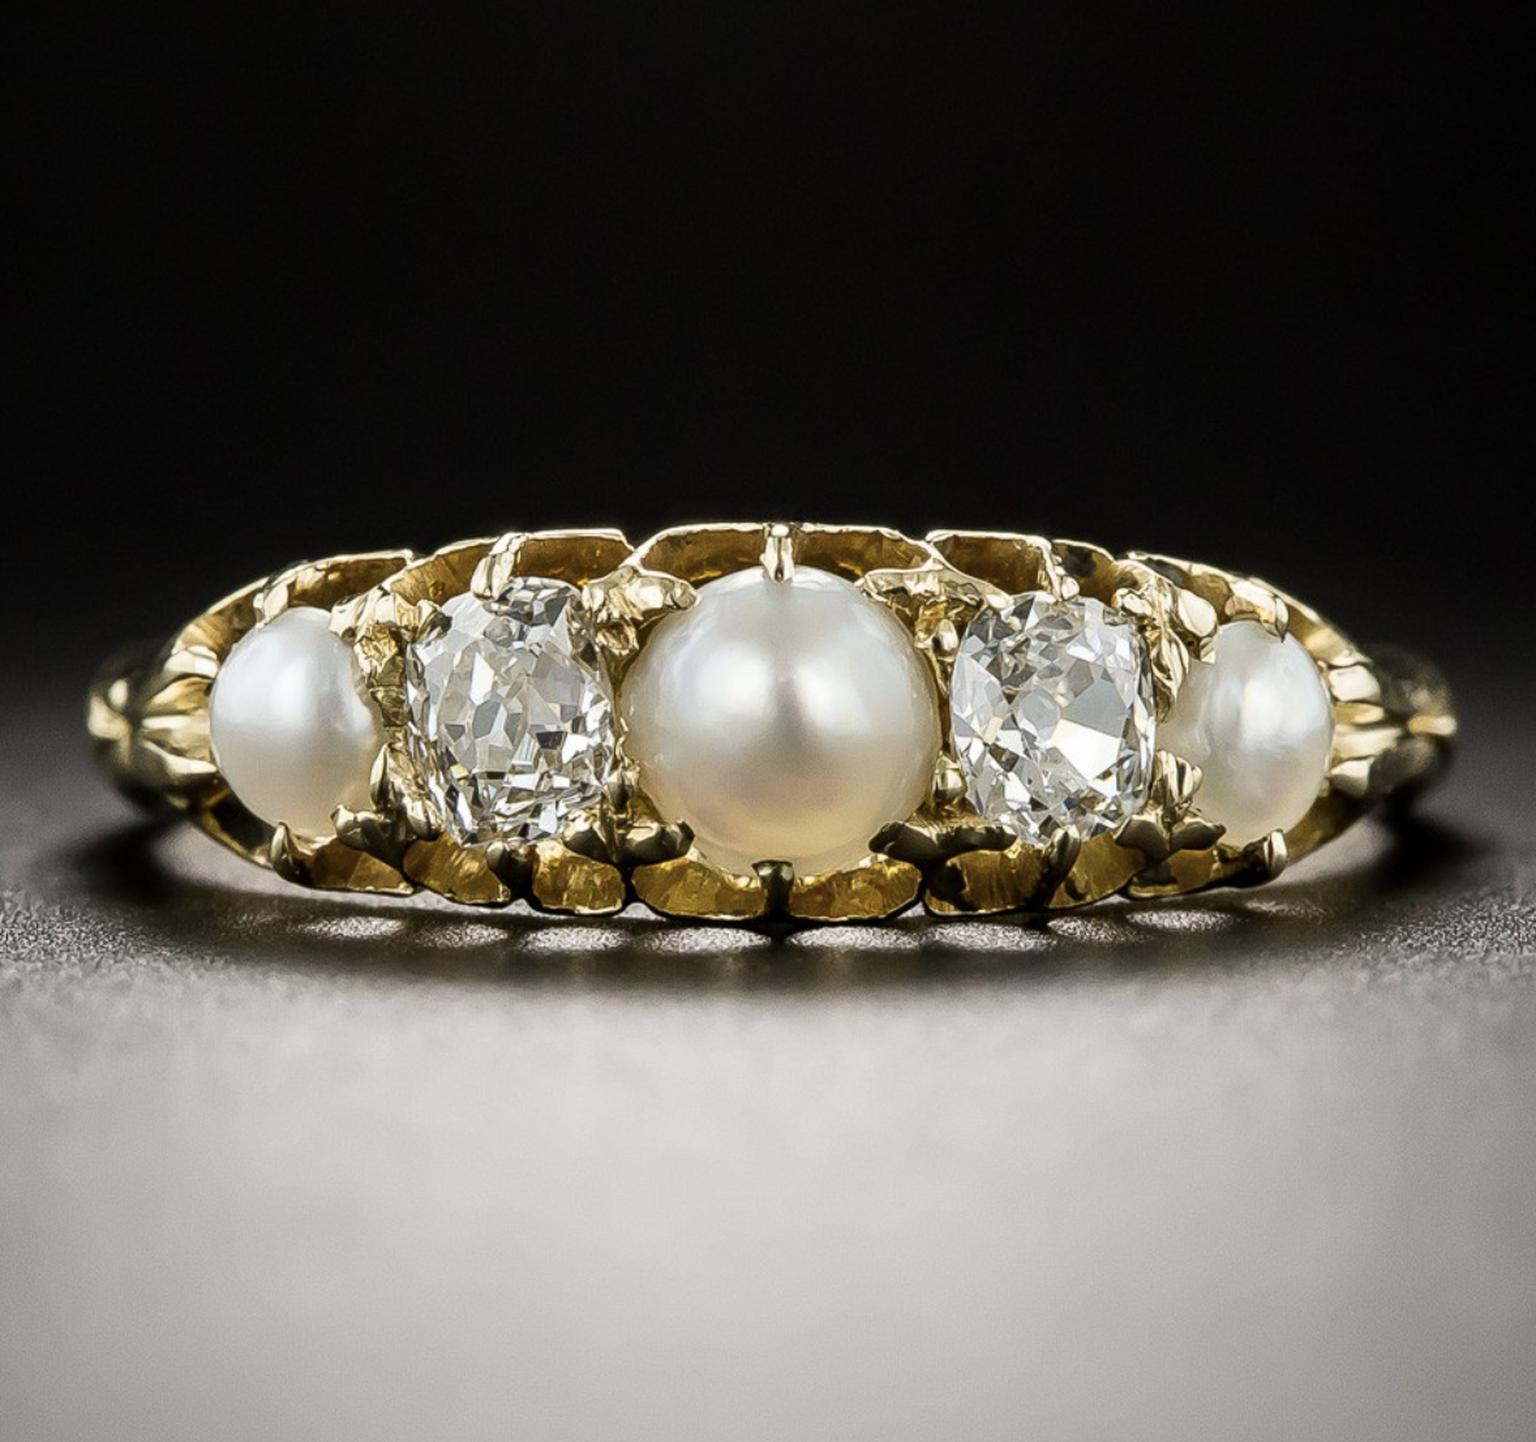 Natural pearl and diamond ring sold by Lang Antiques